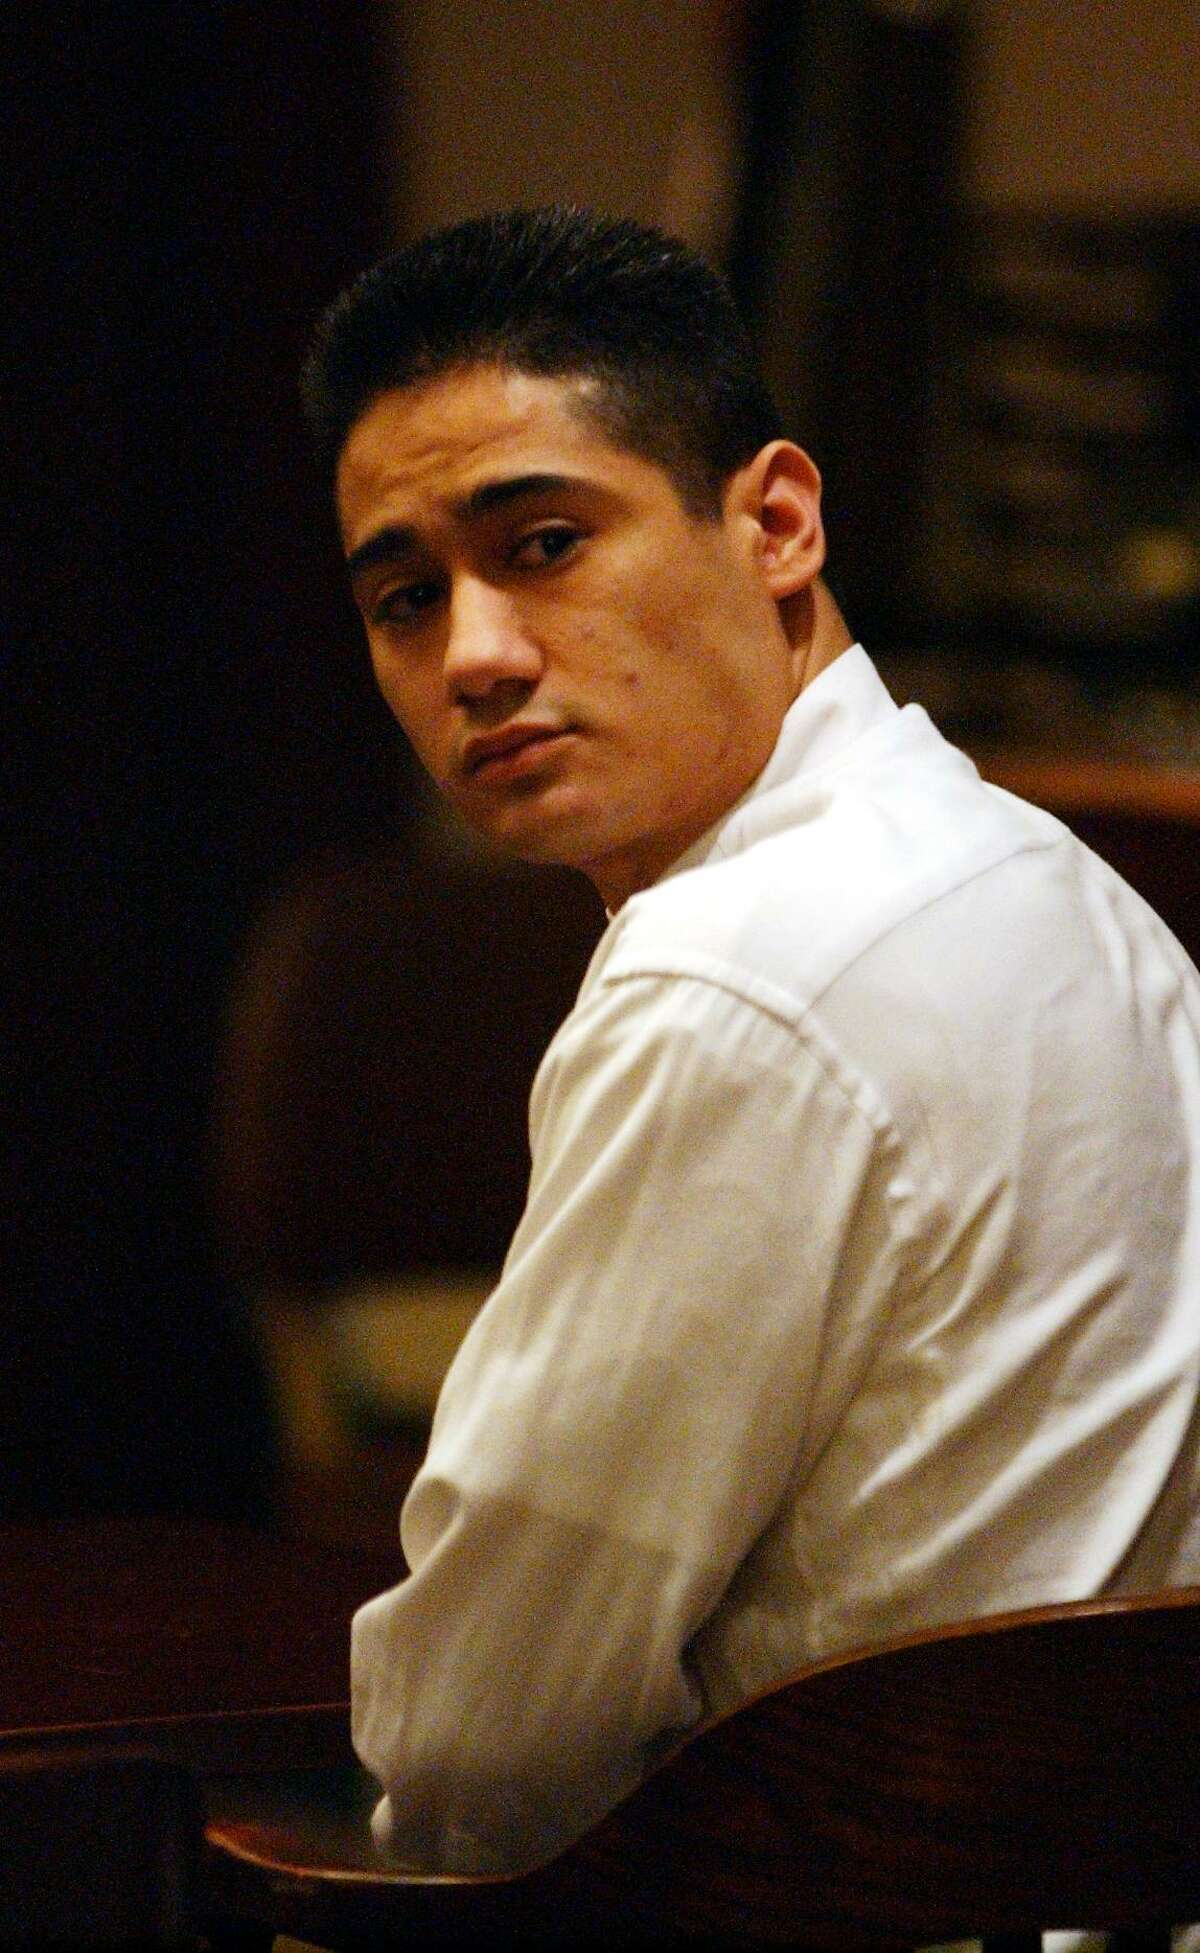 Geronimo Gutierrez, 24, at his capital murder trial in 2002.